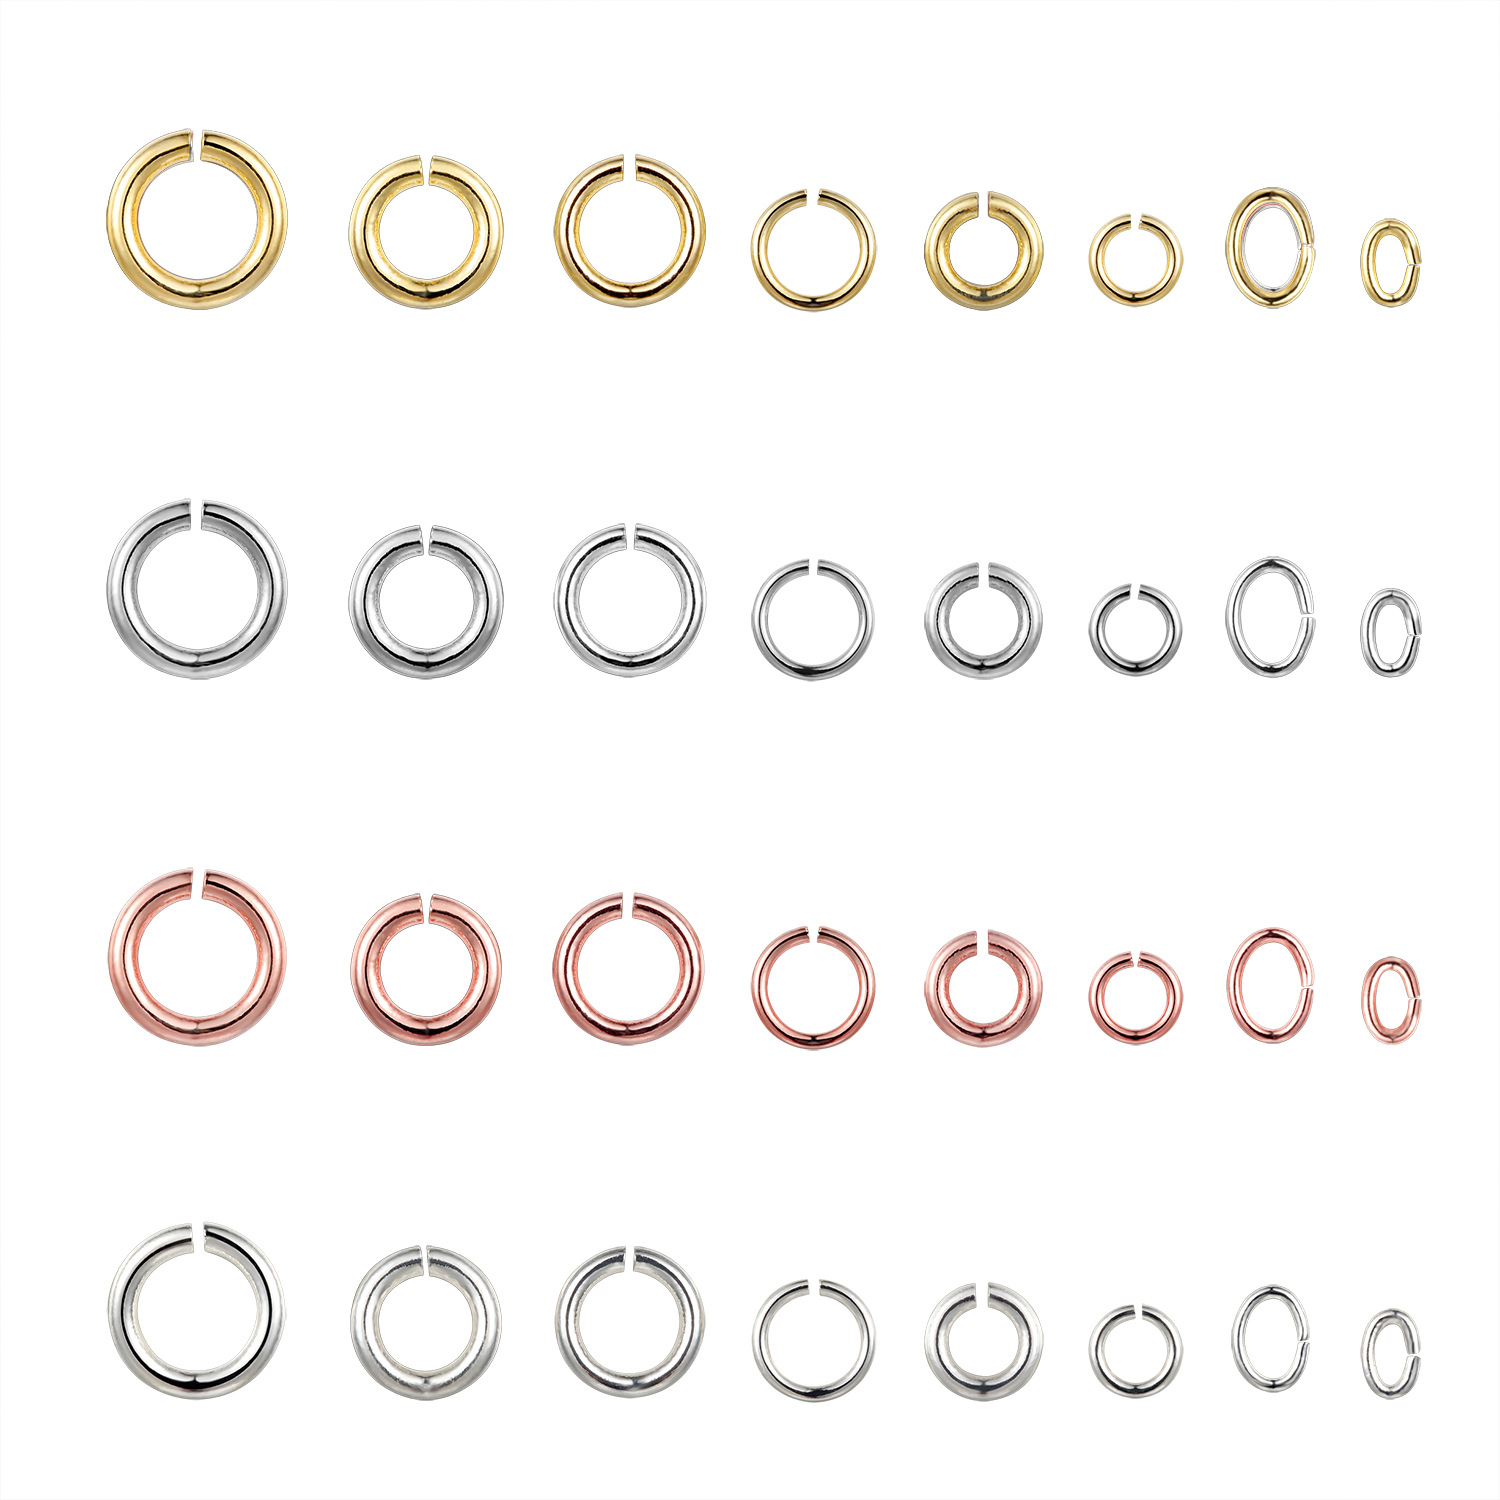 3/4/6/8mm Cheap Beads Jewelry Findings Hot Open Jump Split Rings Connector for DIY Making Gold Plated